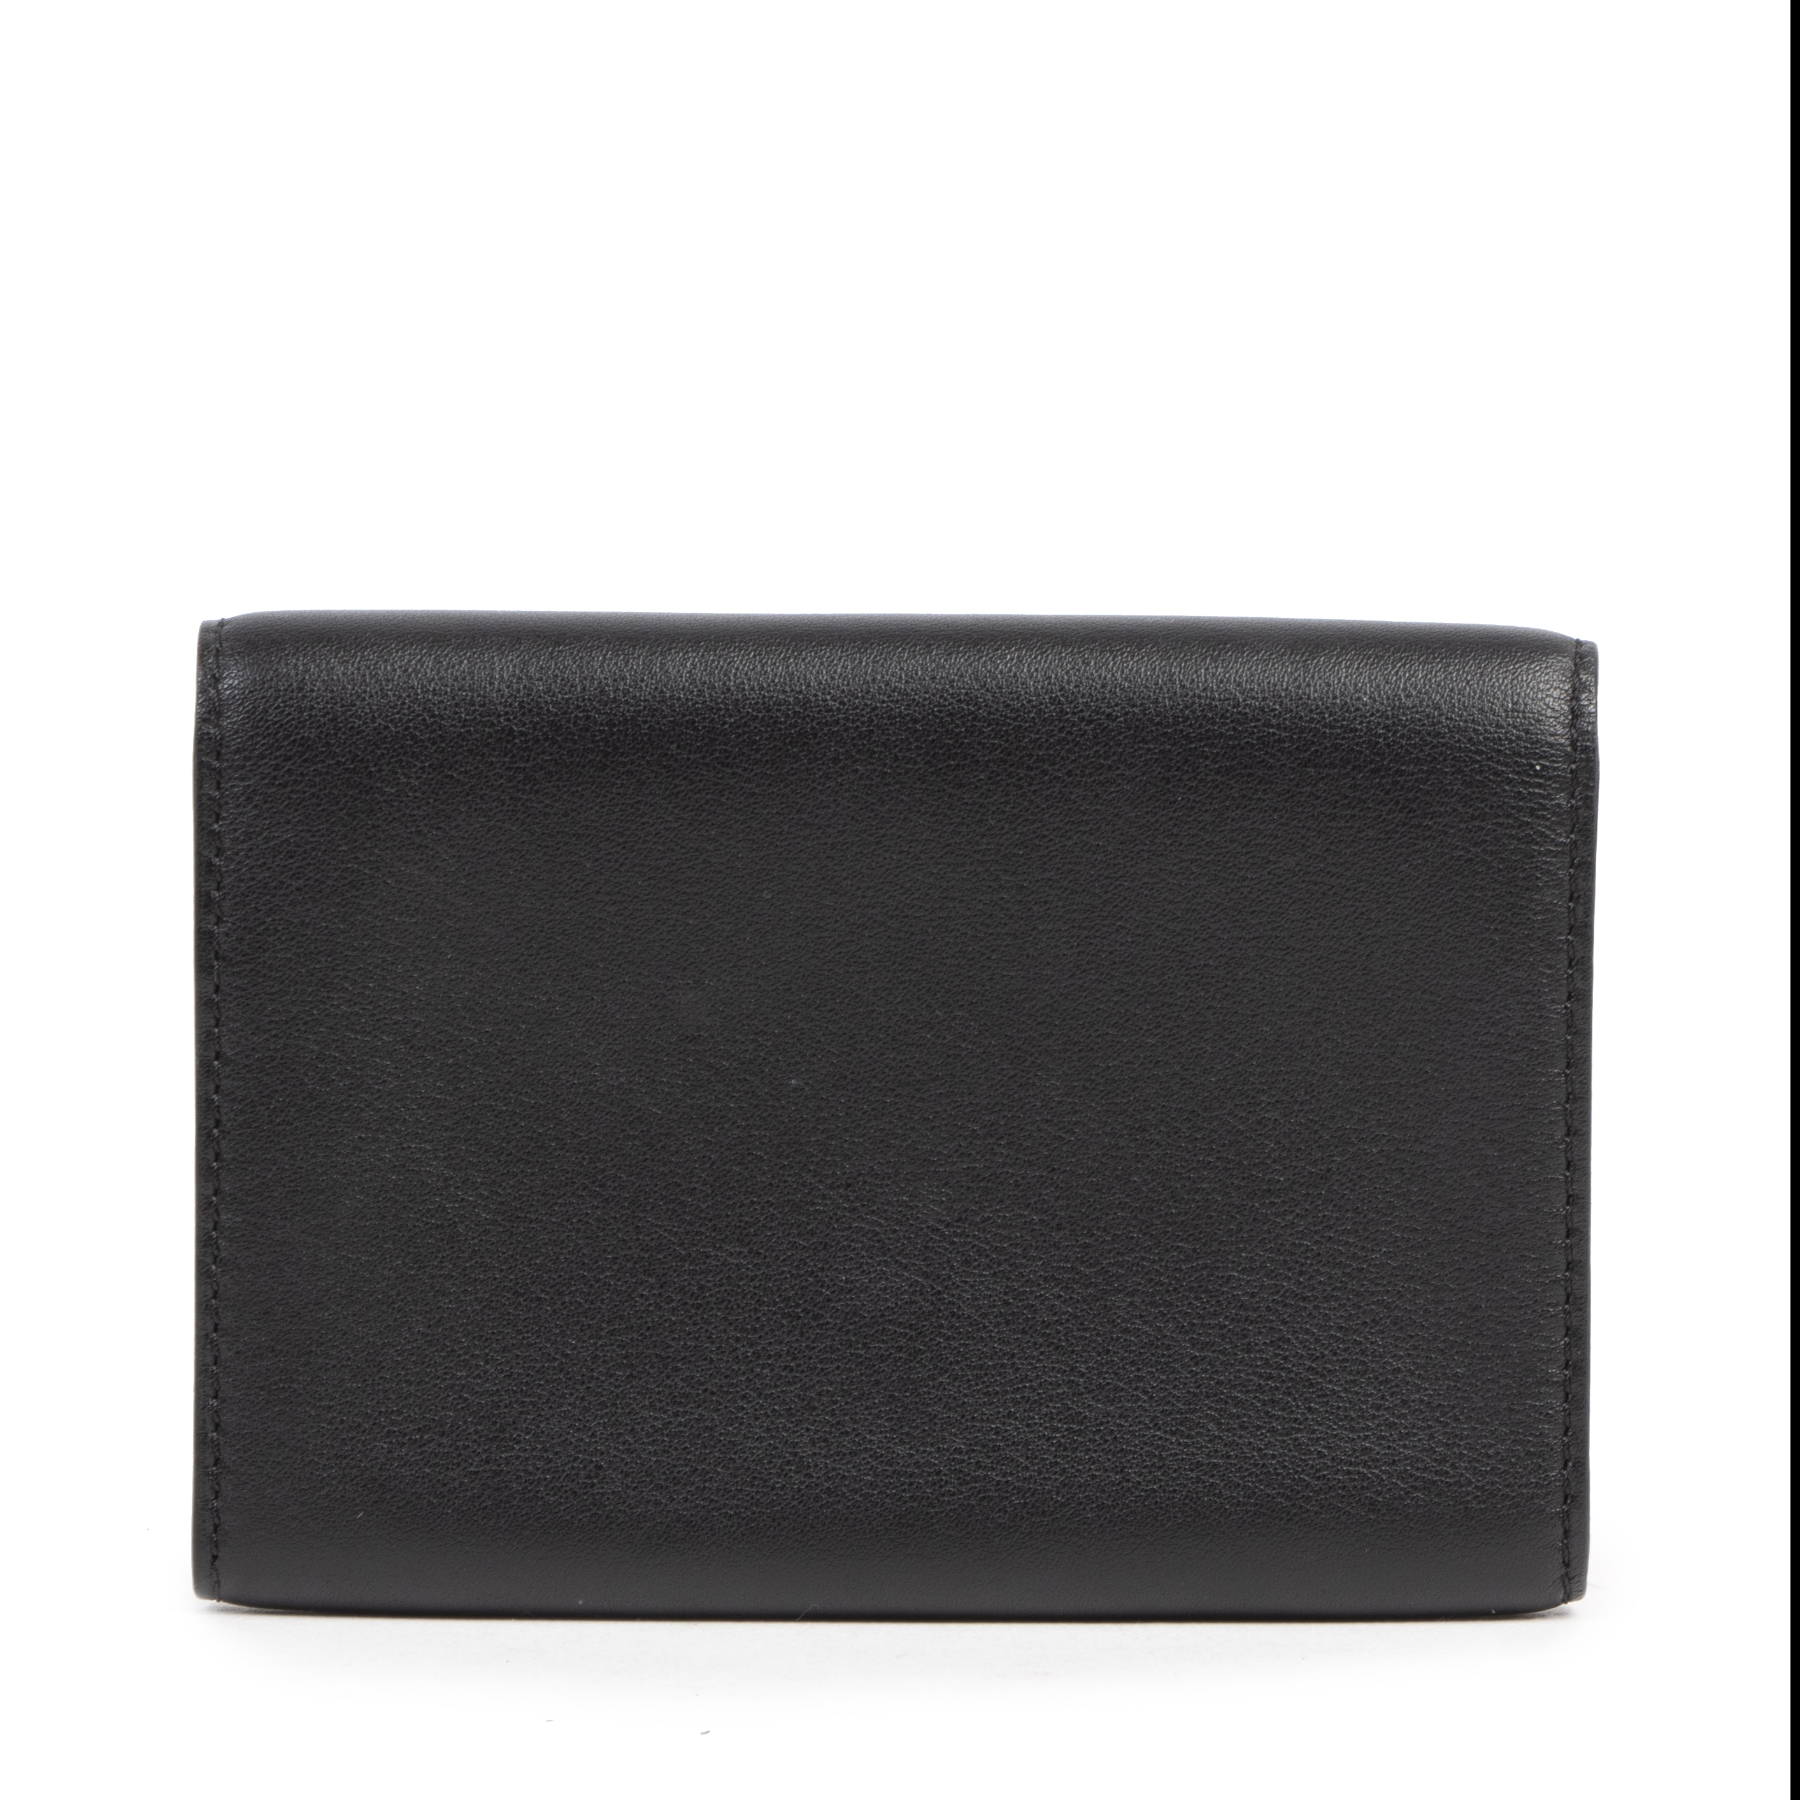 Authentieke tweedehands vintage Delvaux Black Leather Card Holder bij online webshop LabelLOV